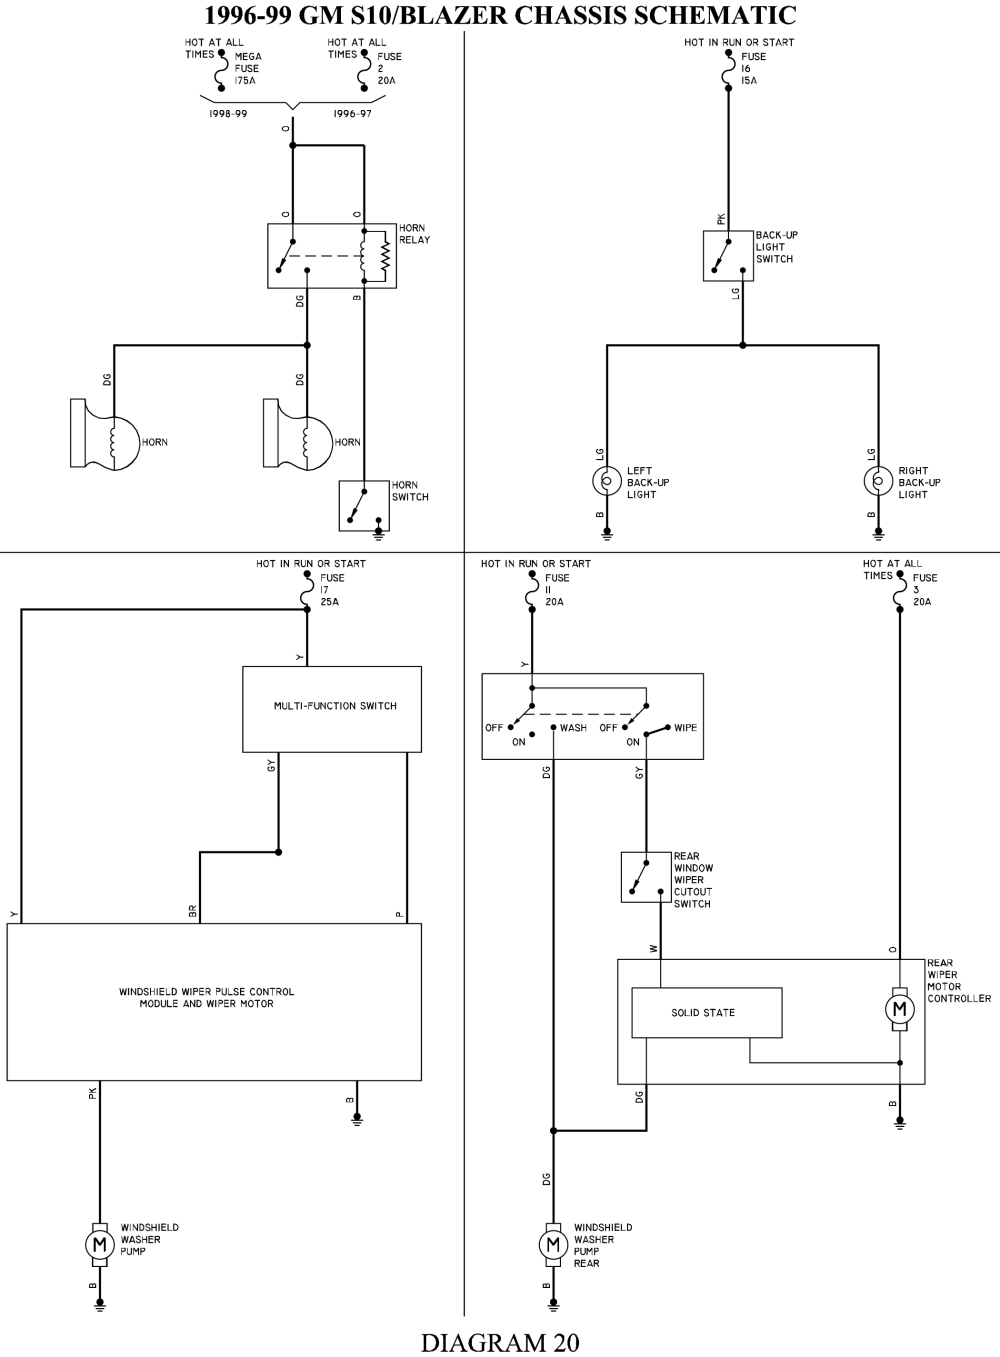 chevrolet s10 wiring diagram Collection-96 Chevy Blazer 4—4 Wiring Diagram Wiring Diagram • Wiring Diagram for 2002 5-h